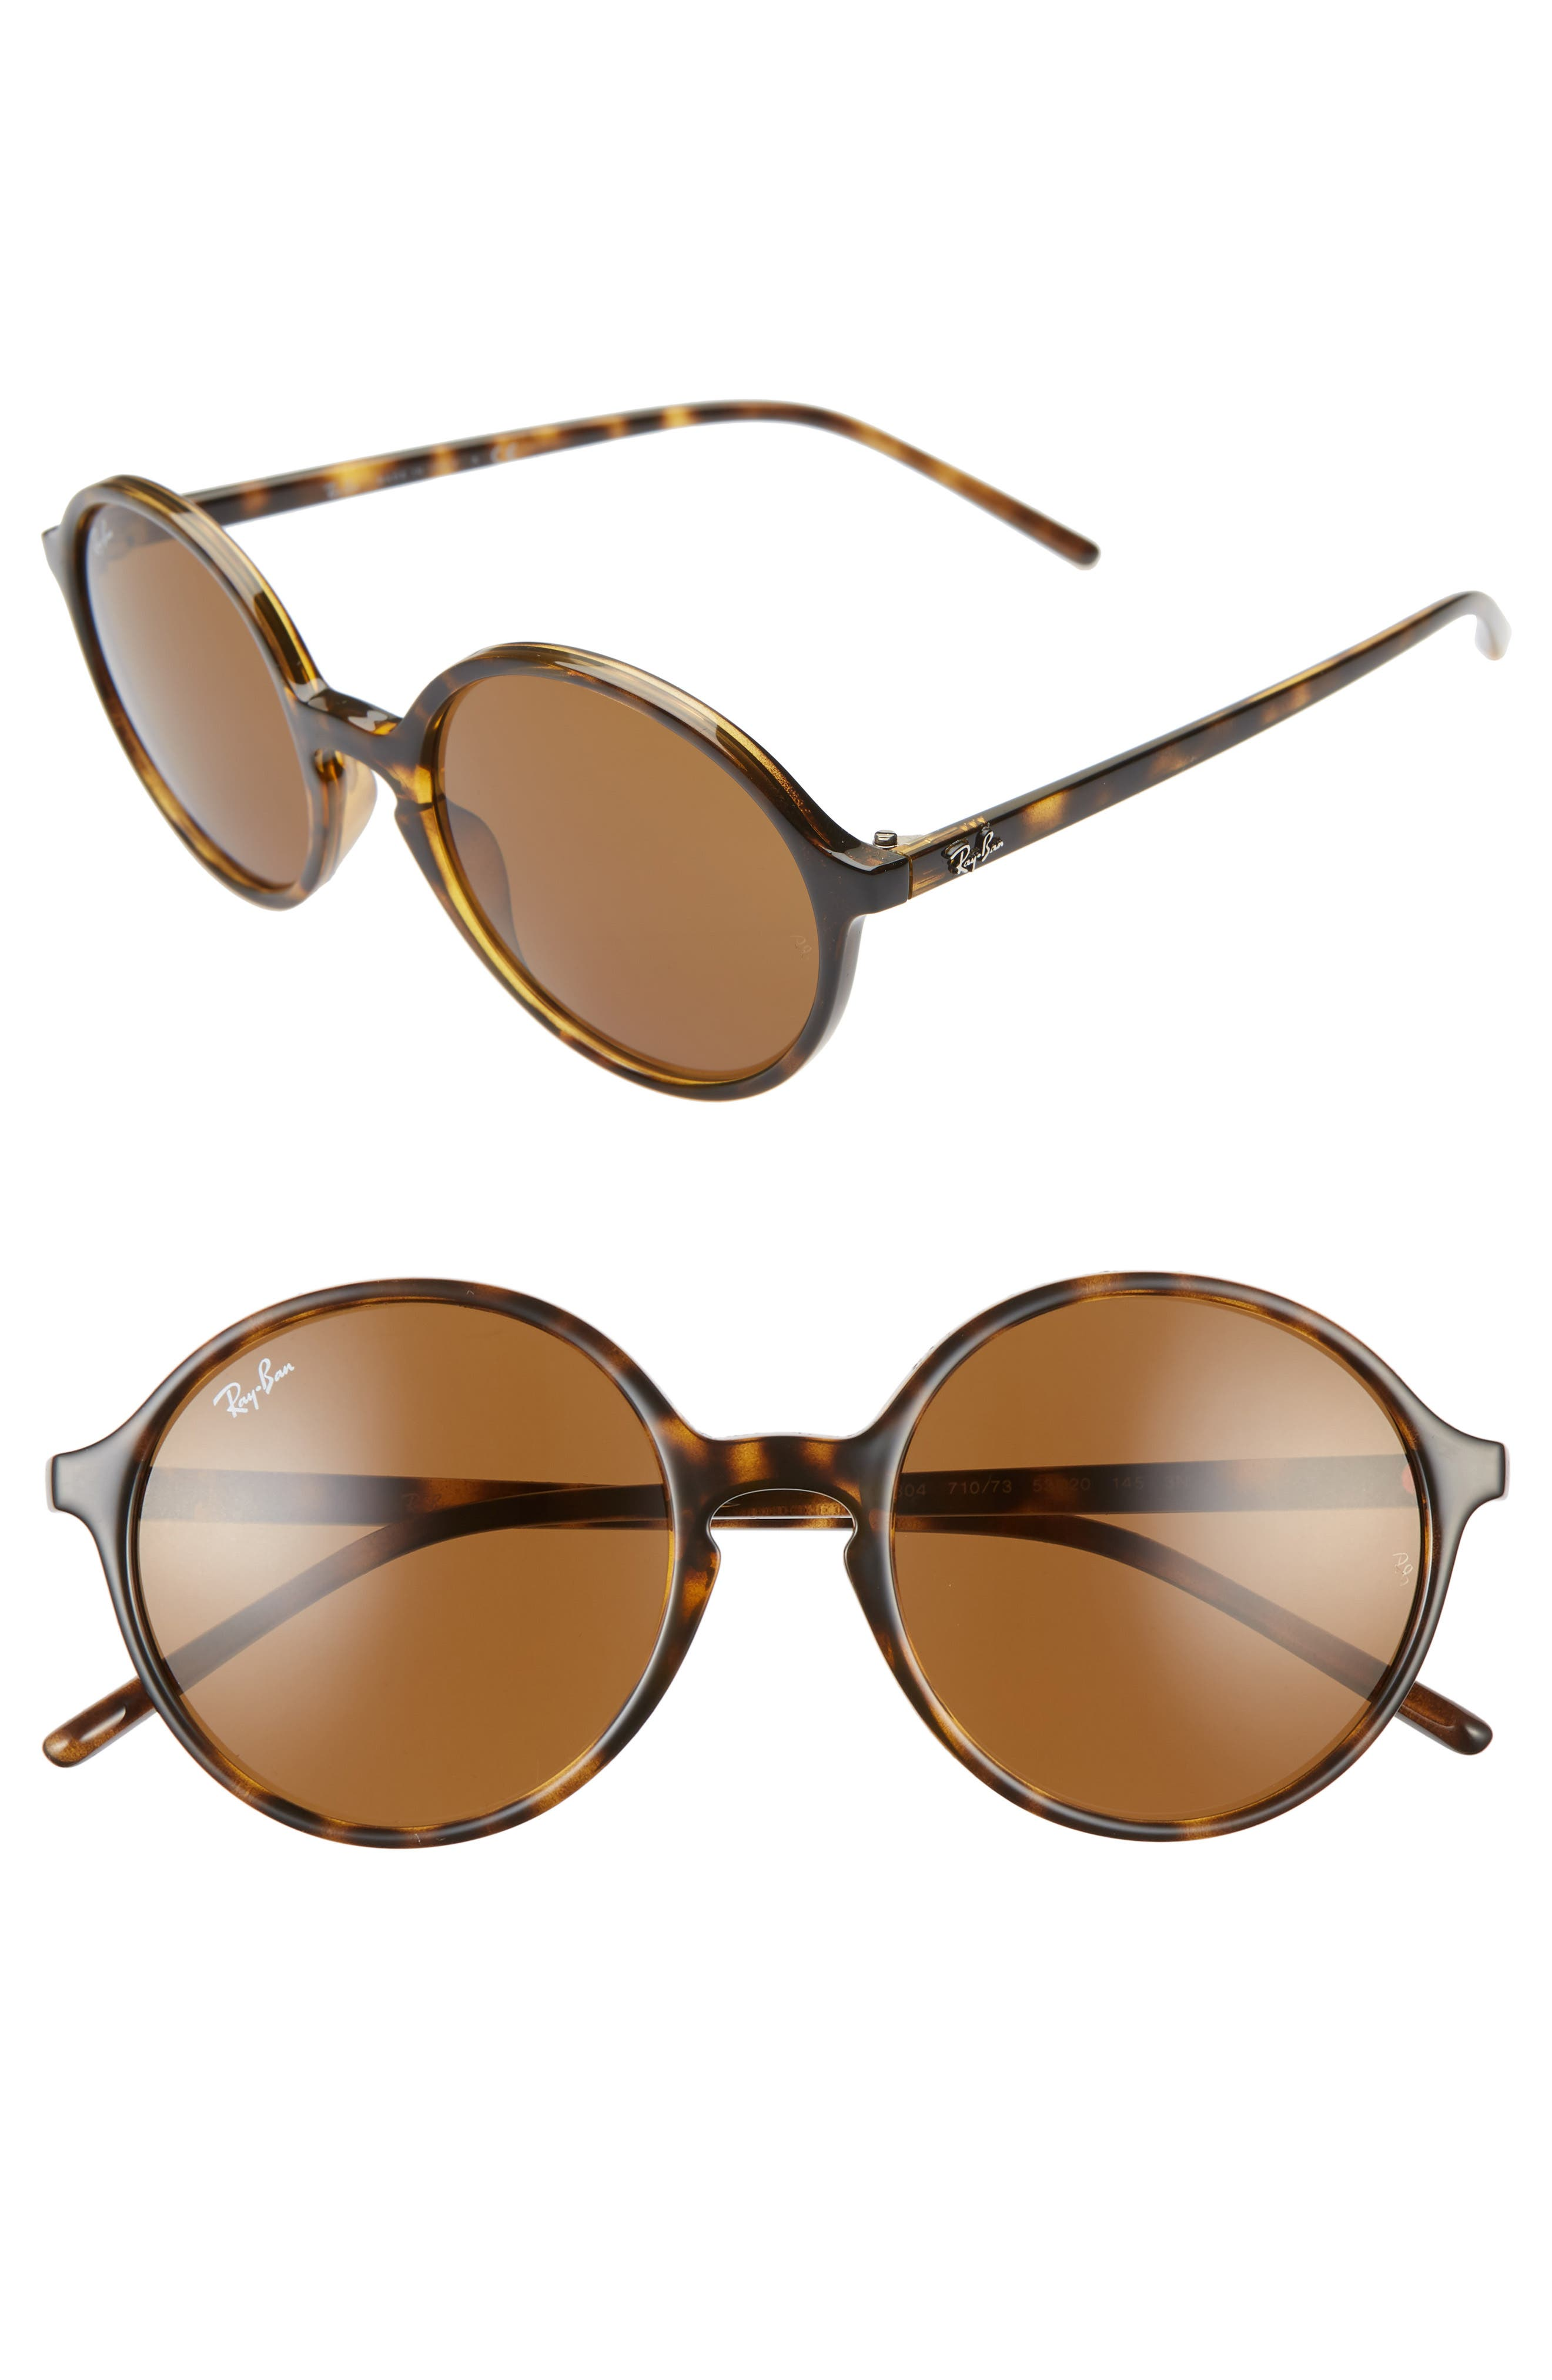 2133c26f2 Ray-Ban 5m Round Sunglasses - Havana/ Brown Solid